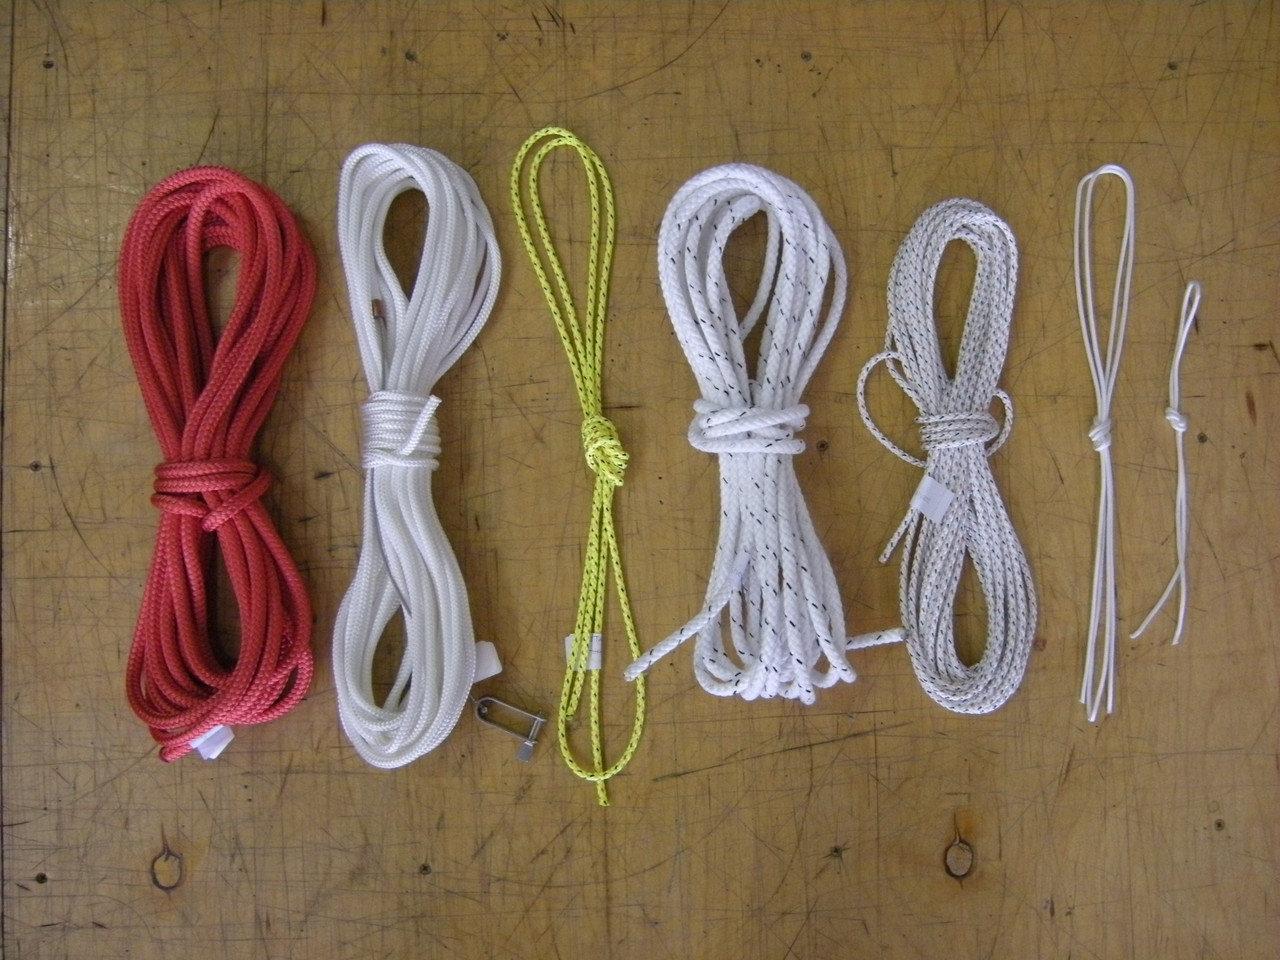 Top notch line kit to fit your Hobie® Getaway catamaran made with quality ropes from Marlow, Bainbridge, and / or Samson.